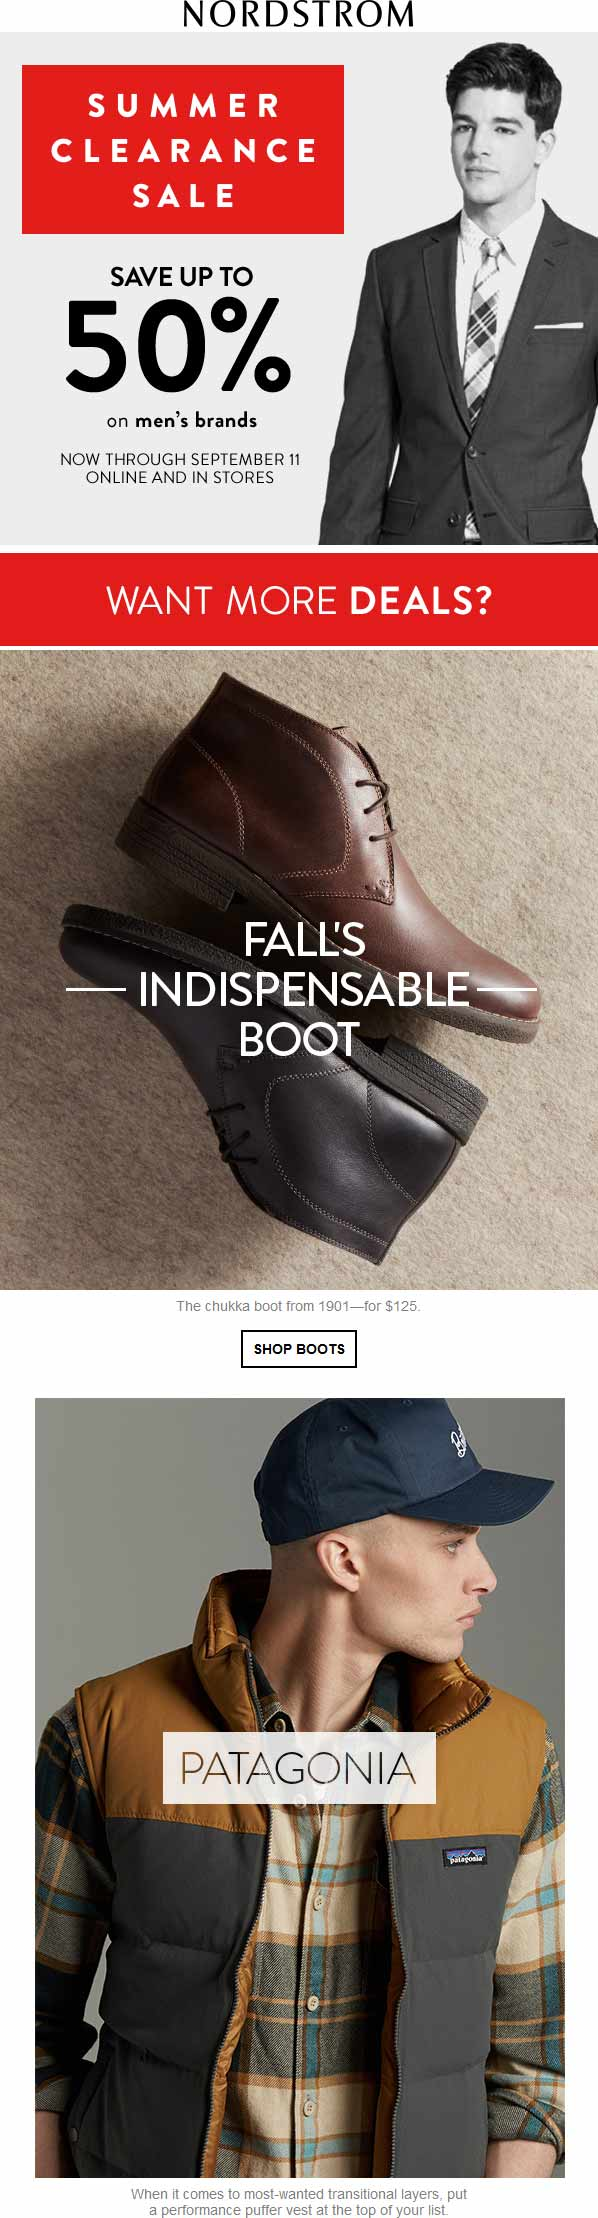 Nordstrom Coupon May 2019 Mens 50% clearance sale going on at Nordstrom, ditto online